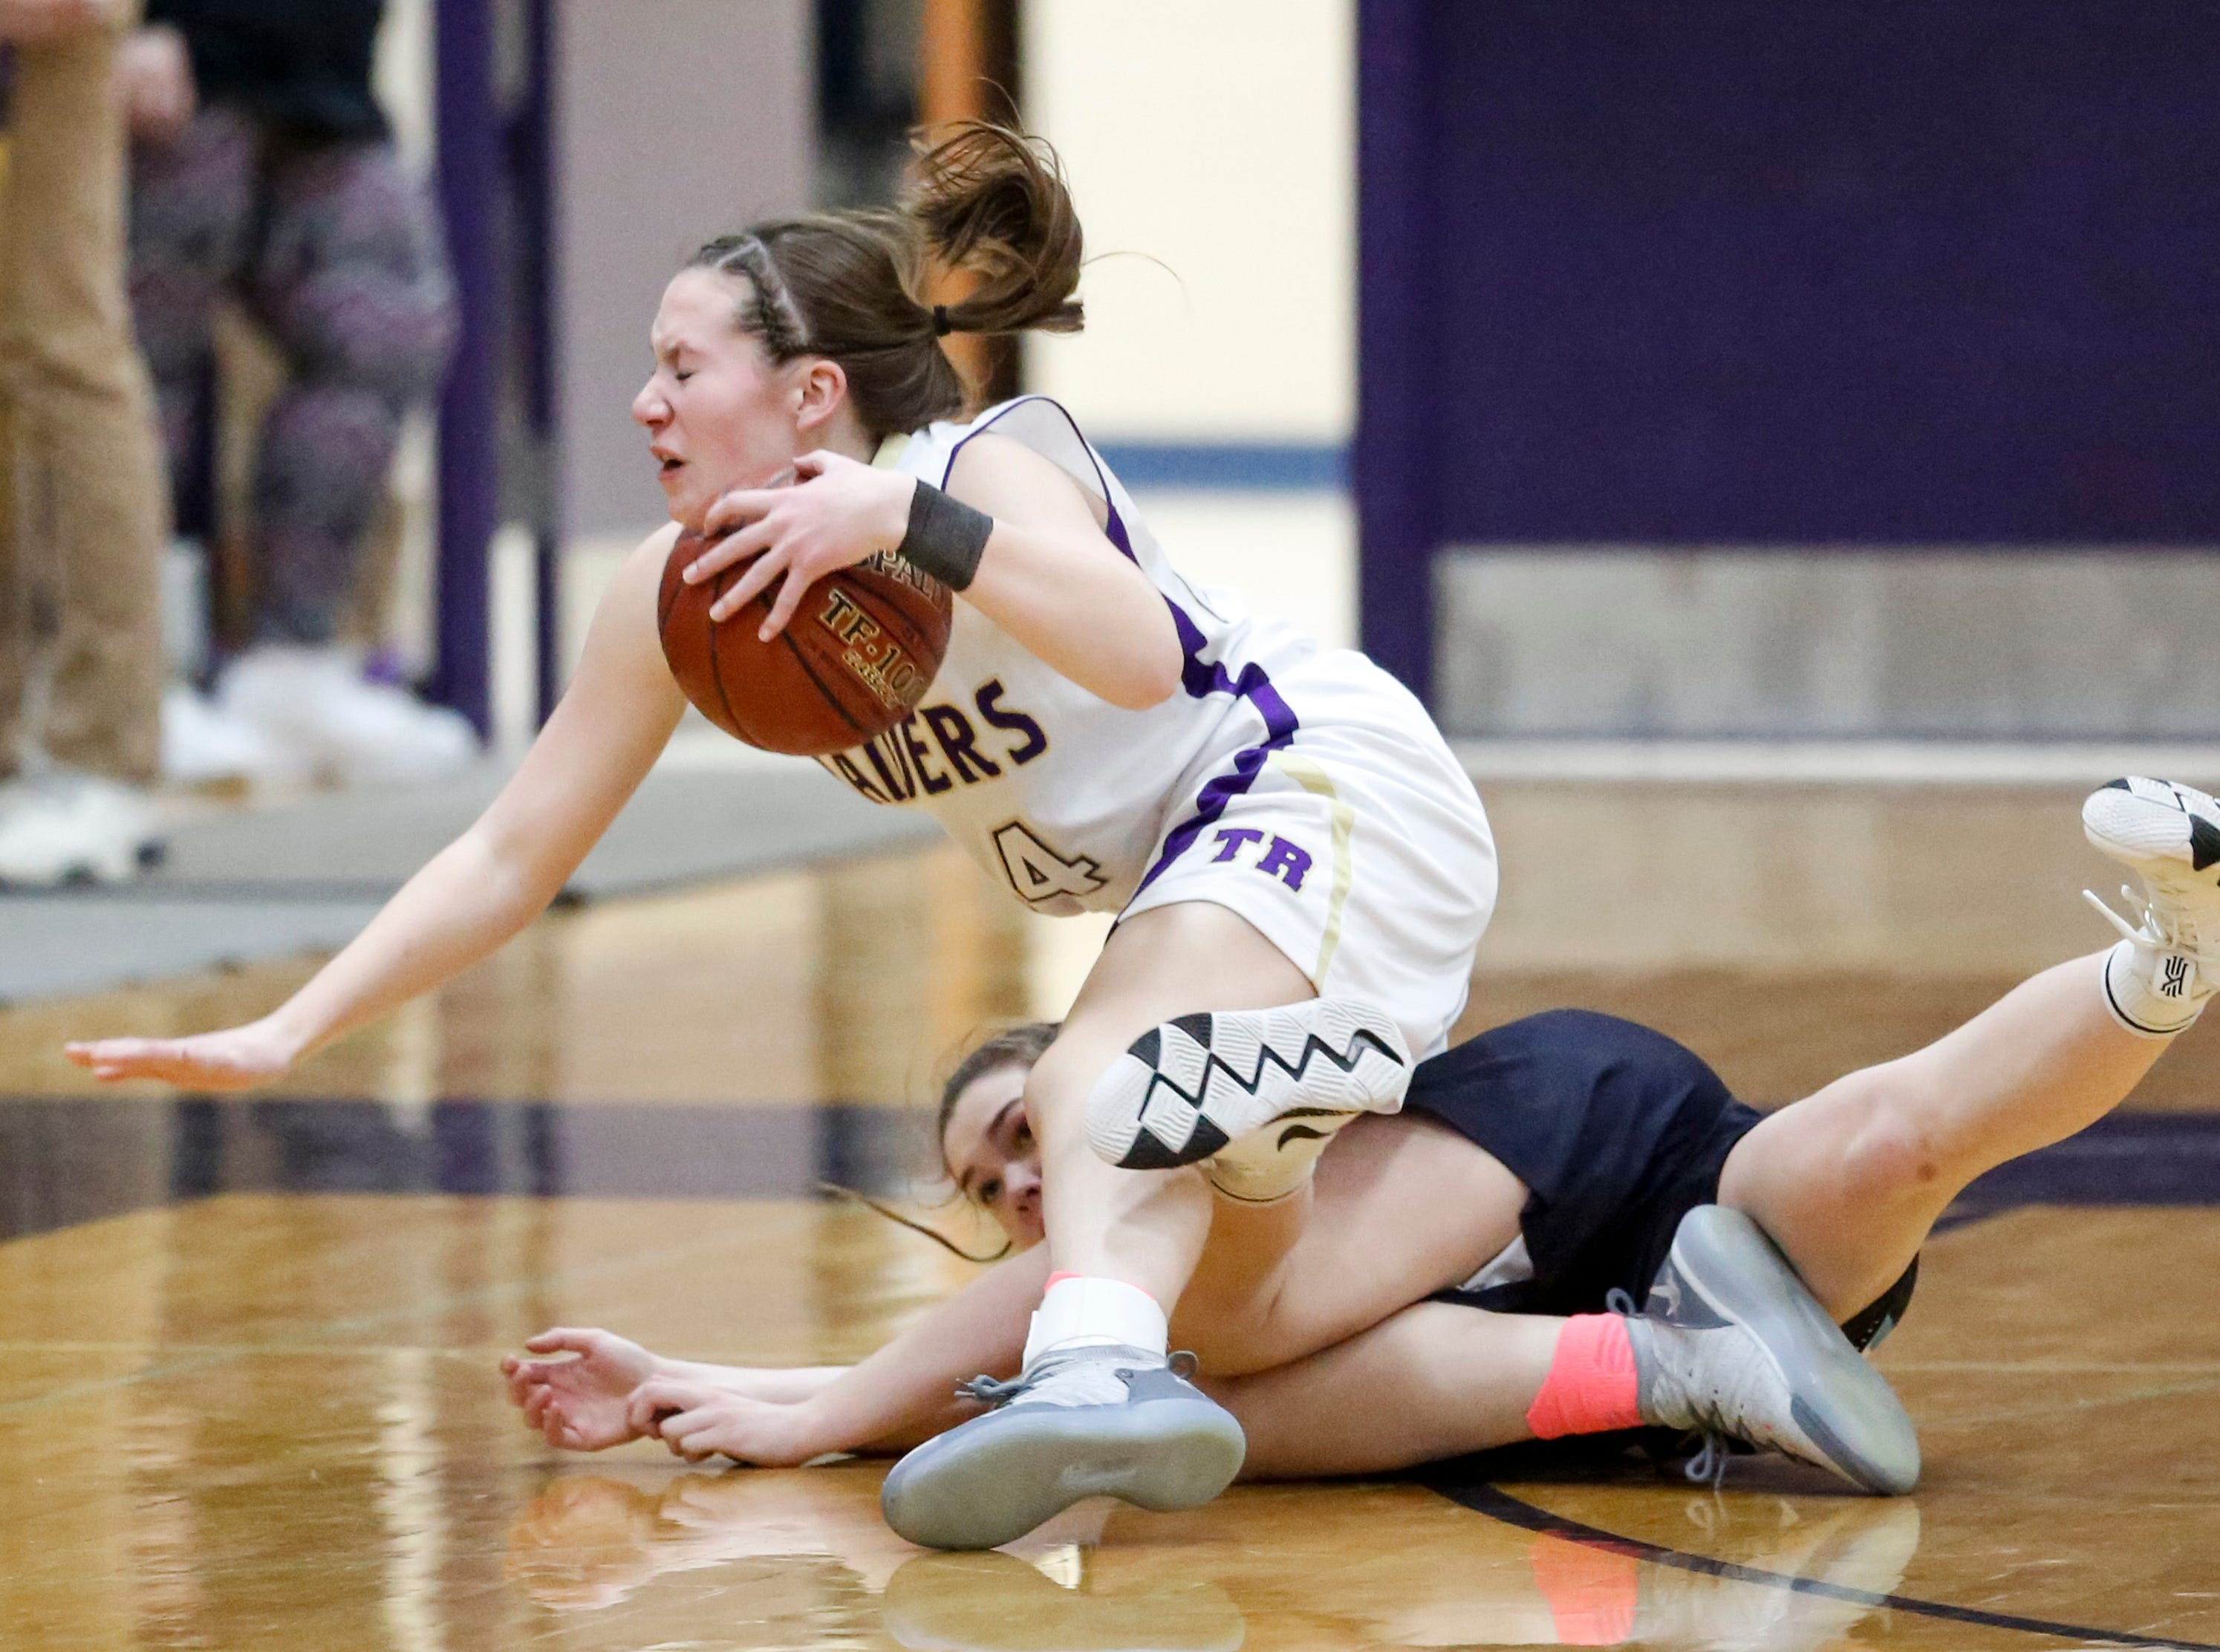 Two Rivers' Kiley Graff (24) gets tripped up by Roncalli's Maya Lusk (3) at Two Rivers High School Friday, February 1, 2019, in Two Rivers, Wis. Joshua Clark/USA TODAY NETWORK-Wisconsin